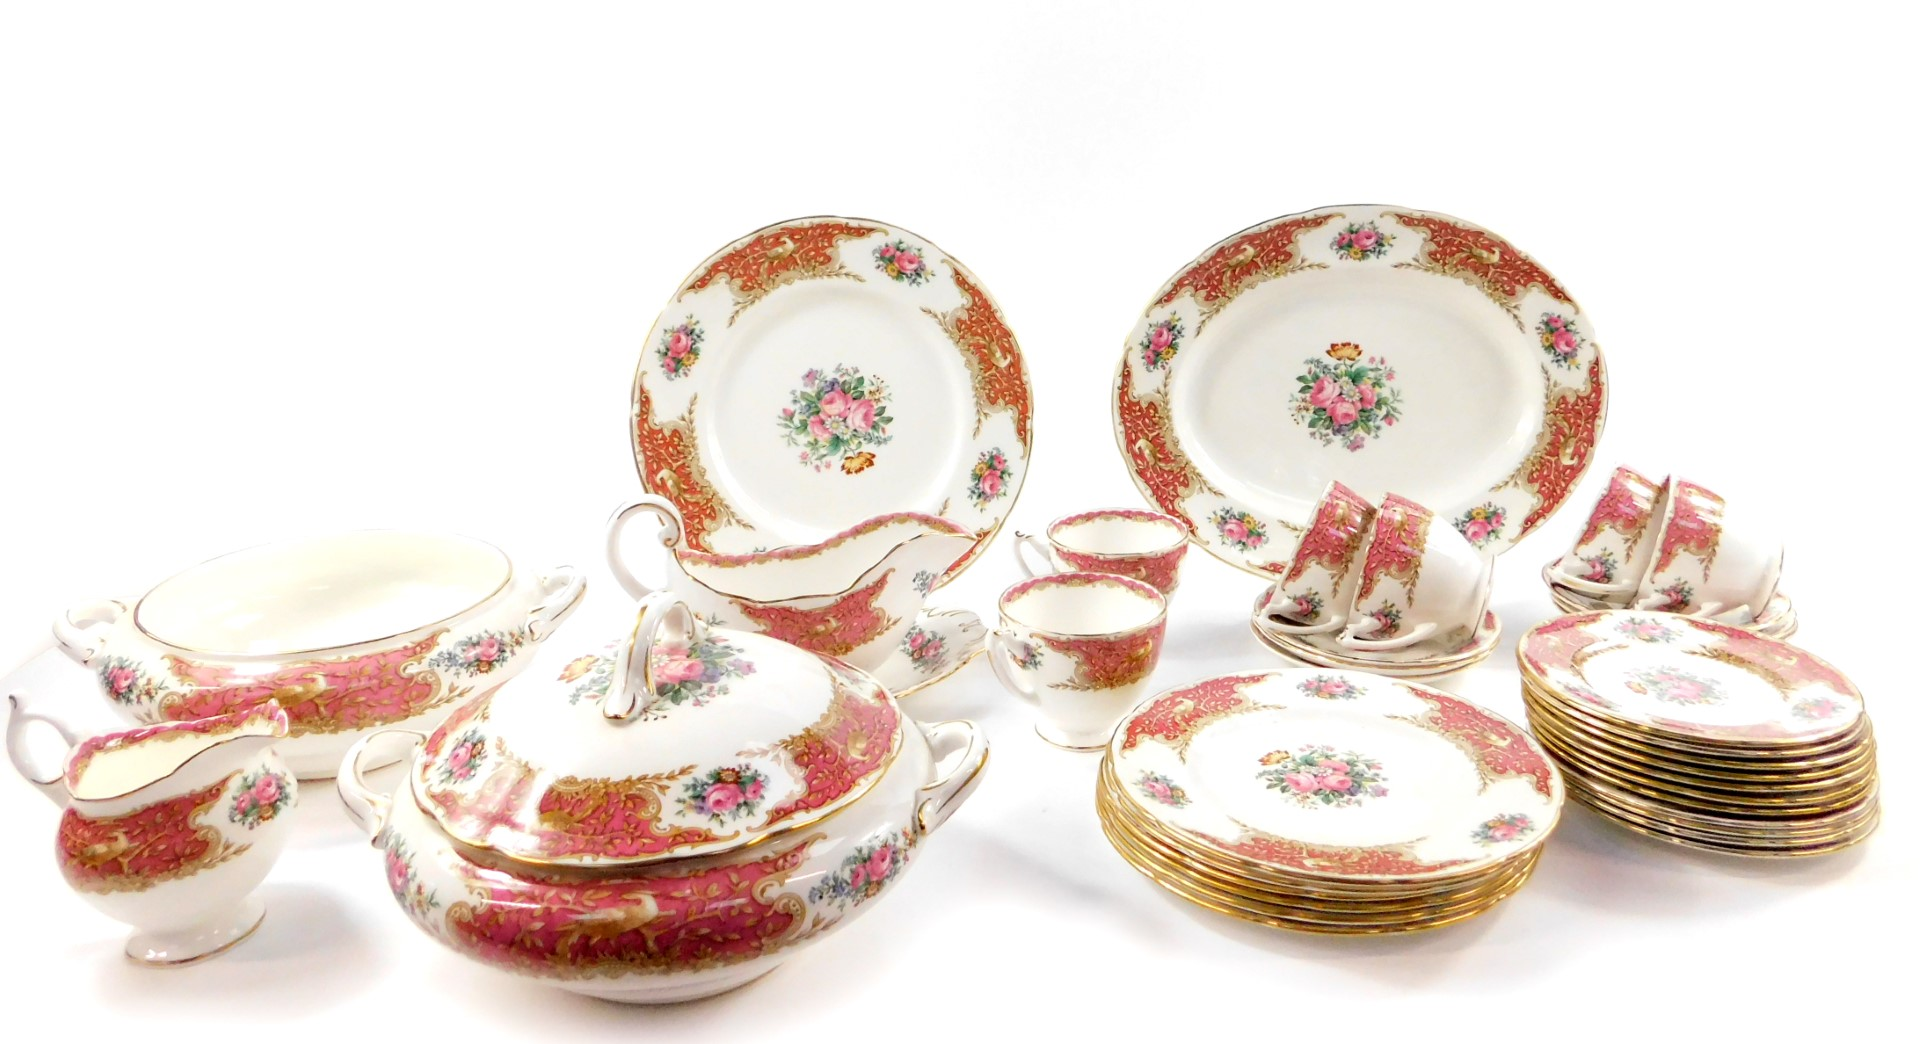 Lot 21 - A Coalport porcelain part dinner and tea service decorated in the Montrose Pink pattern,